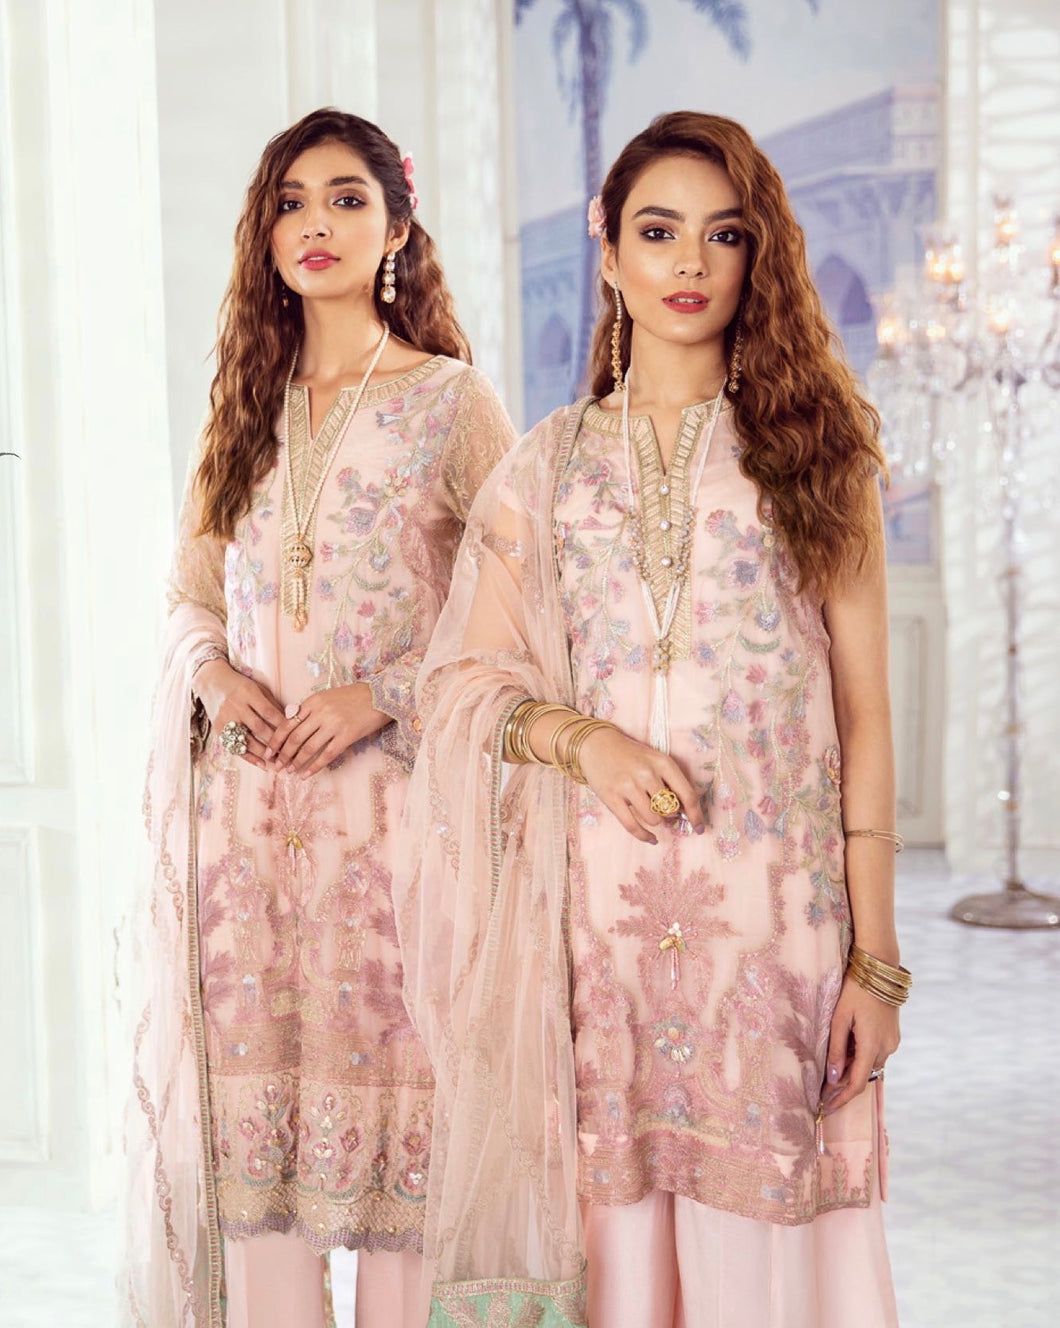 Iznik Designer Suit Wedding 2020-ID-06 FLUORESCENT PEARL